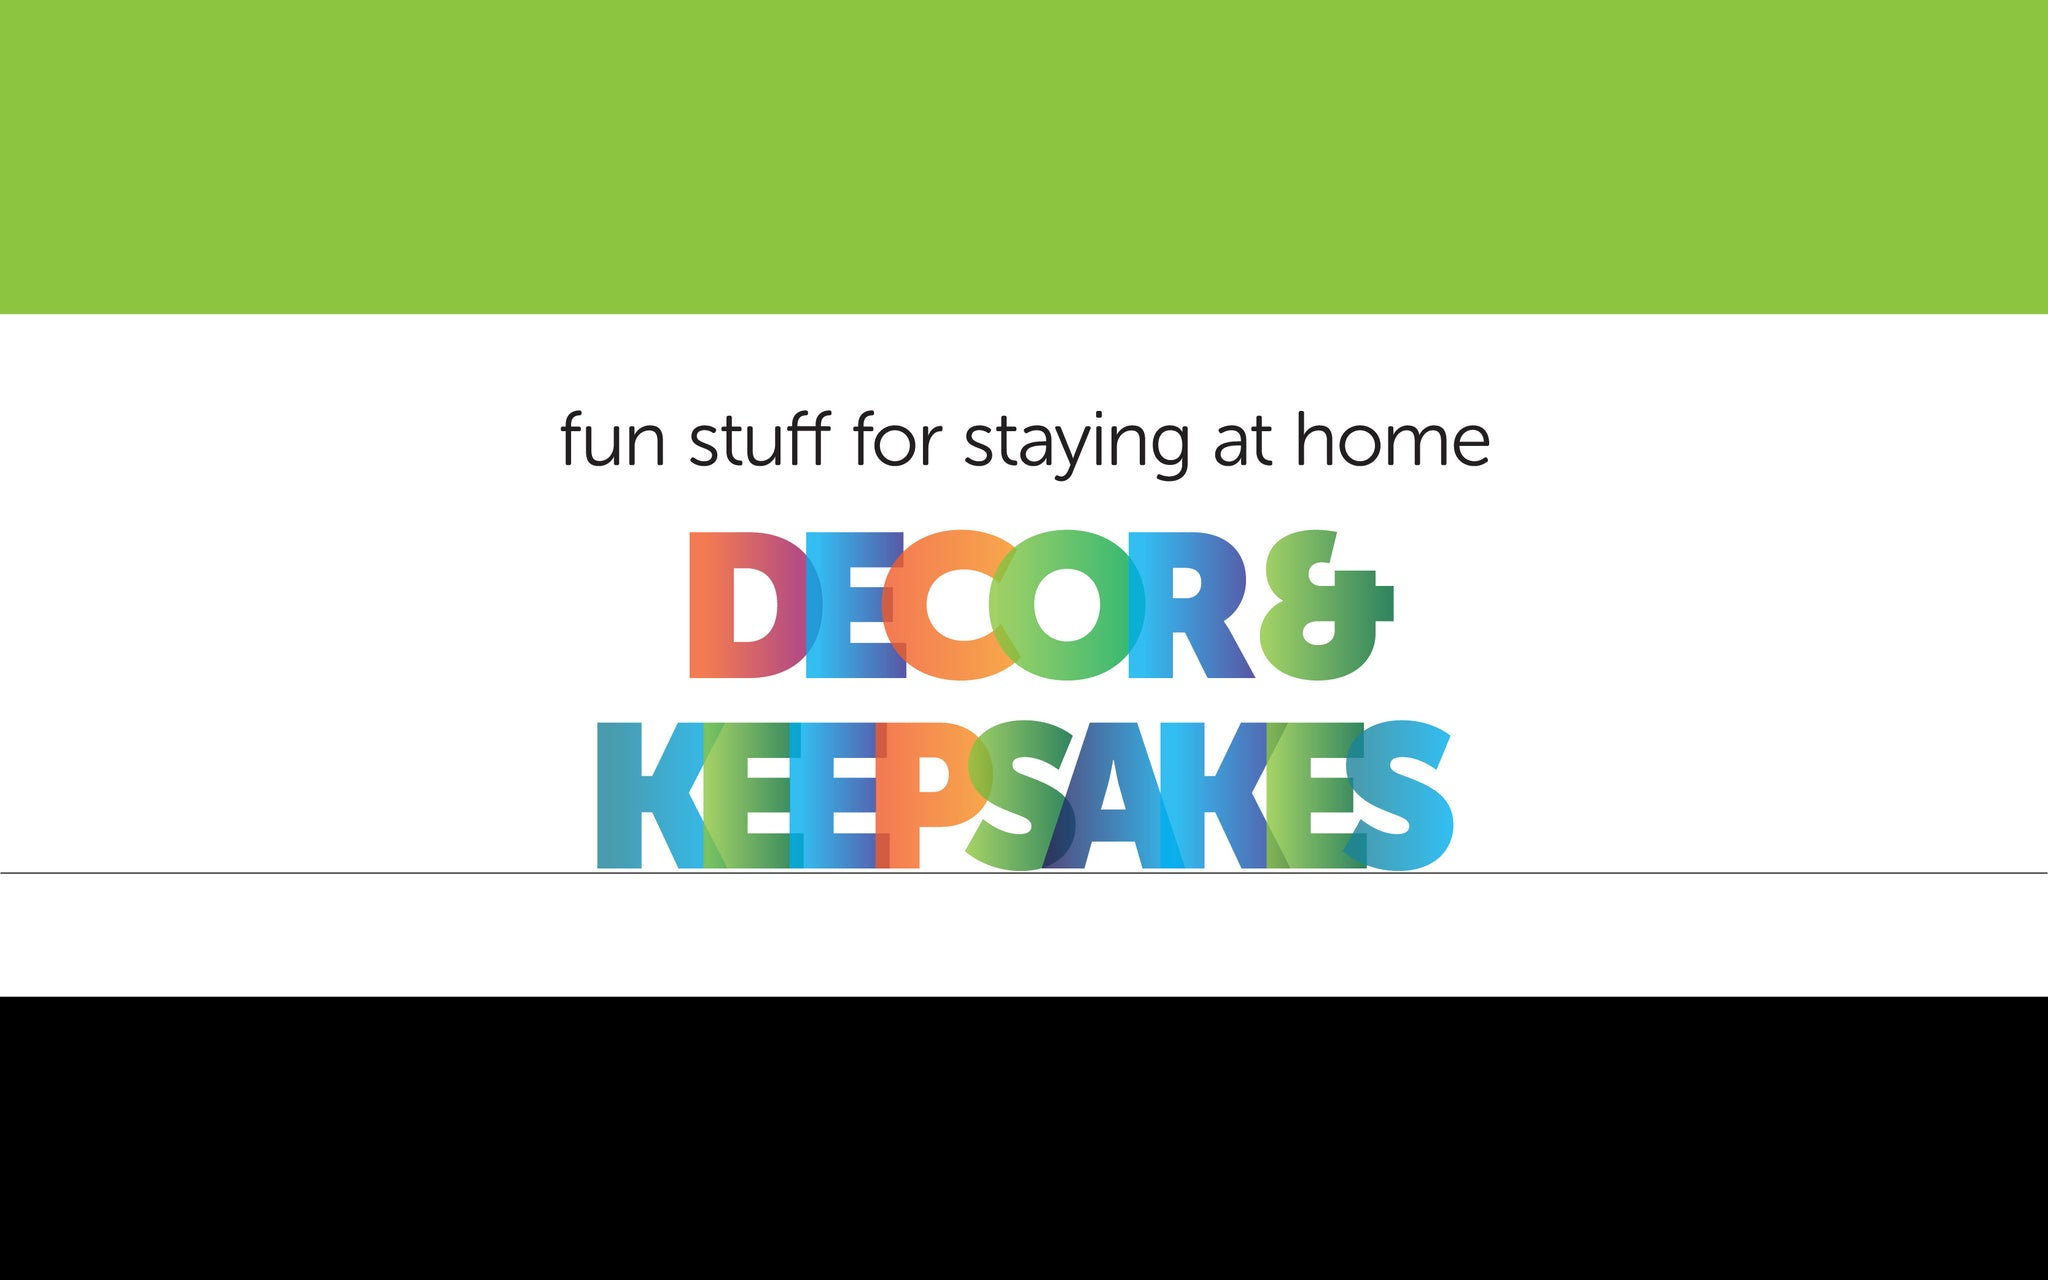 Décor & Keepsakes